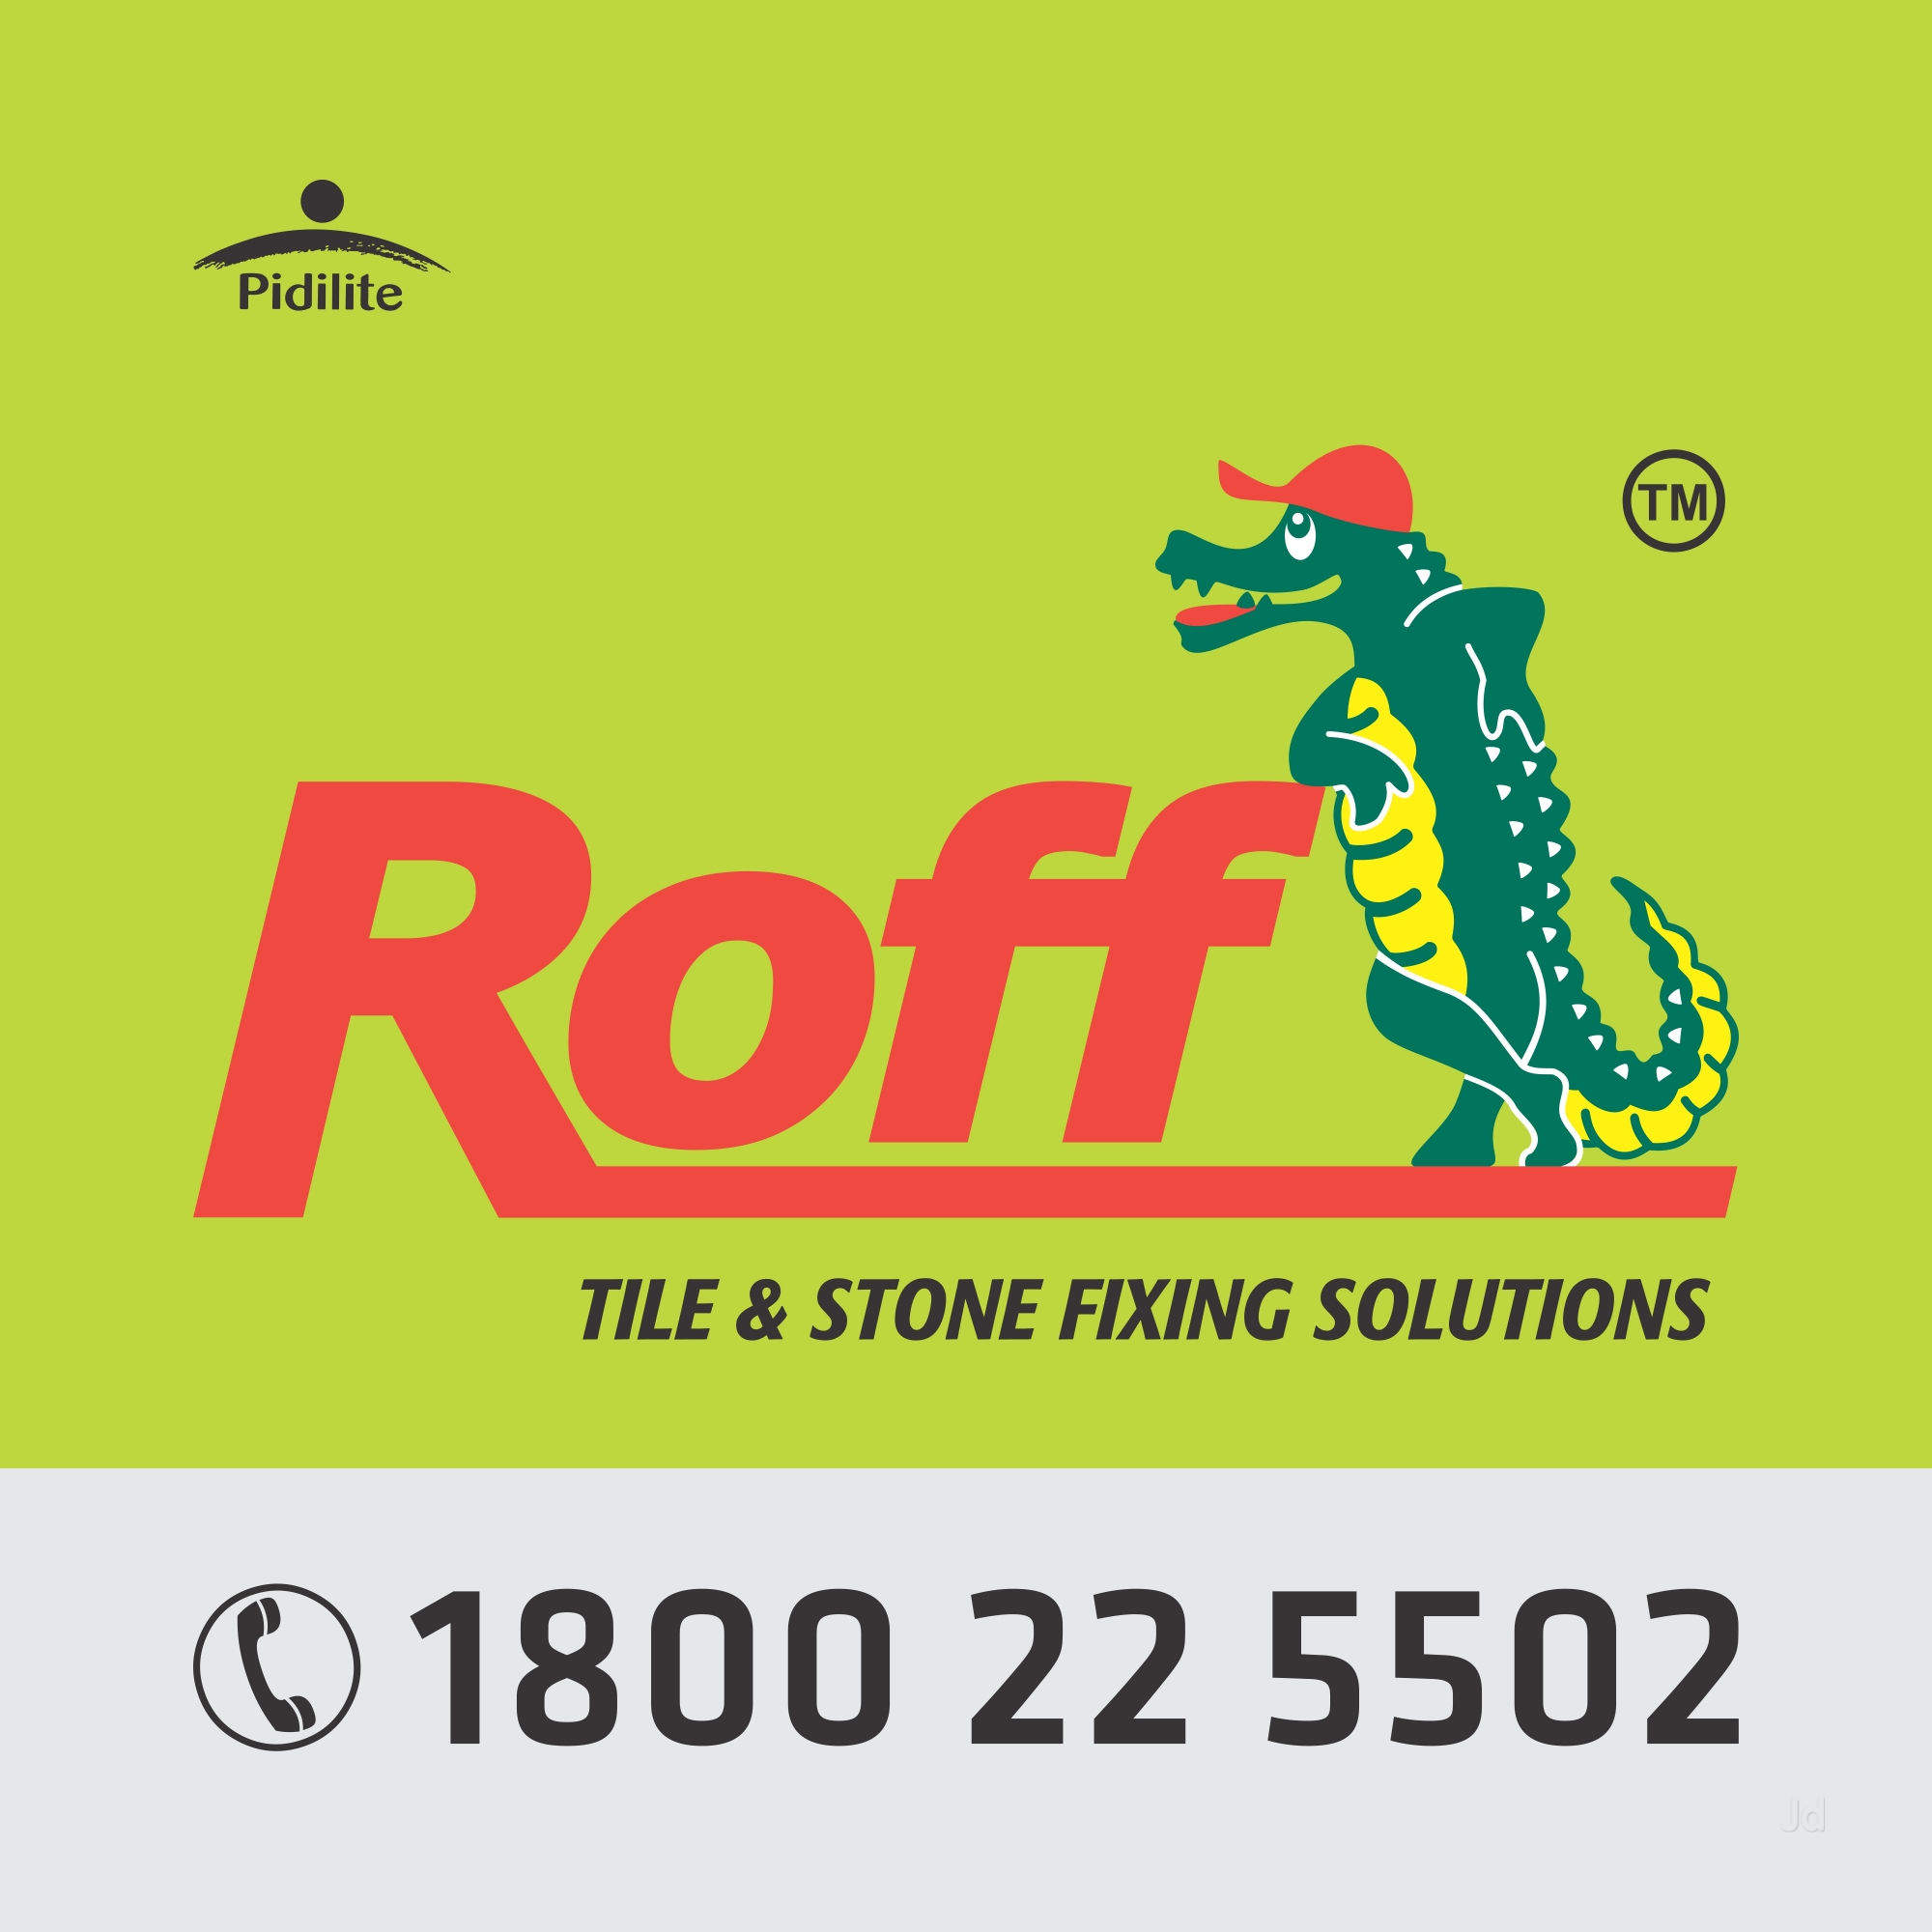 Roff Tile And Stone Fixing Solutions Edward Road Pop Contractors In Bangalore Justdial